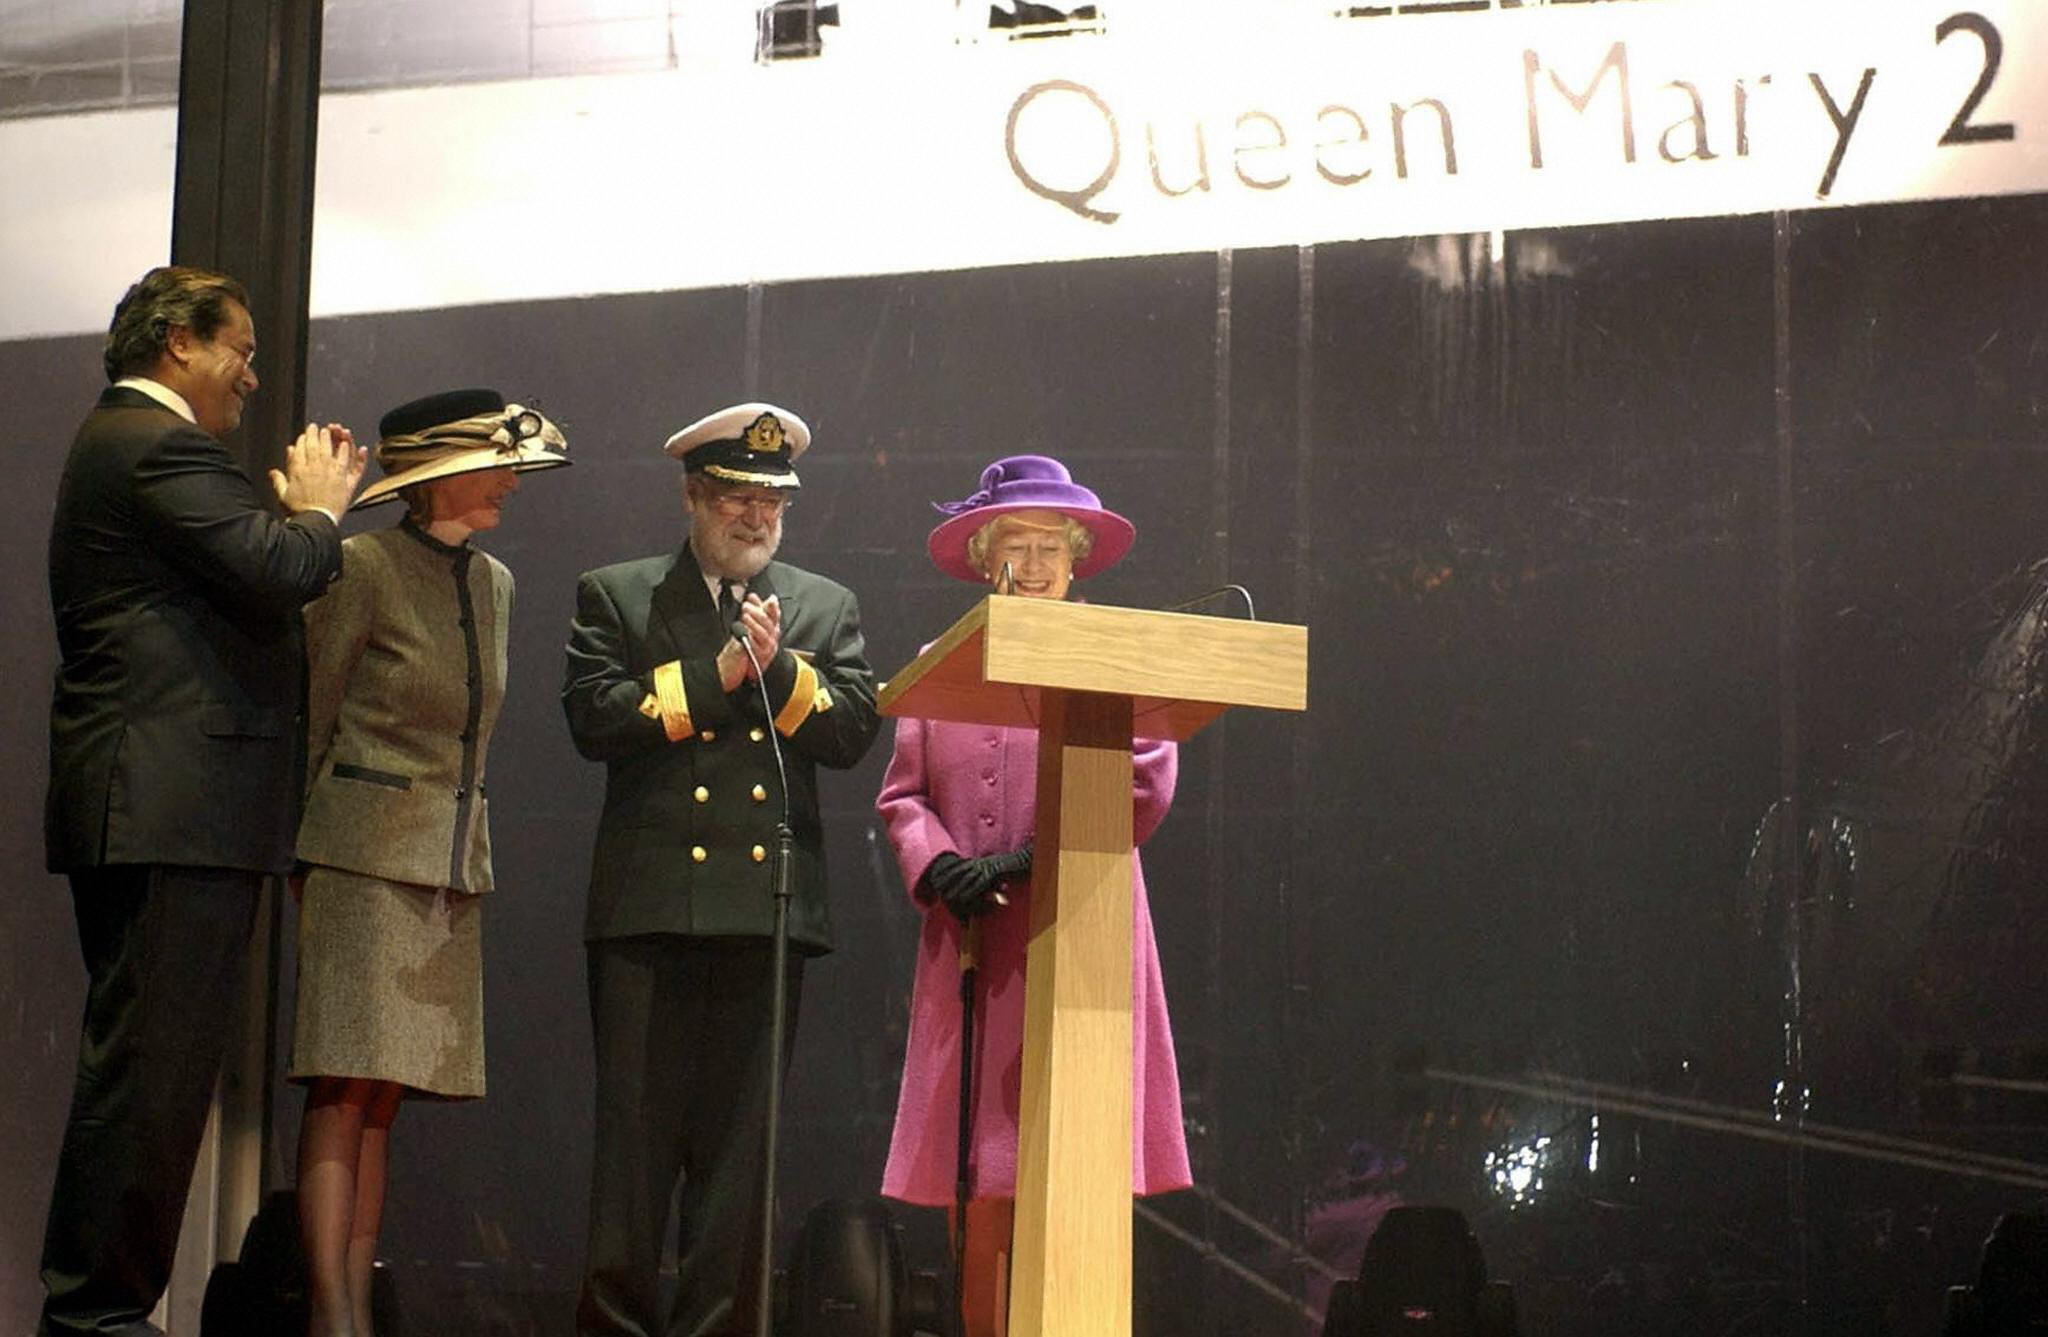 Queen Elizabeth ceremoniously names the Queen Mary 2 cruise liner